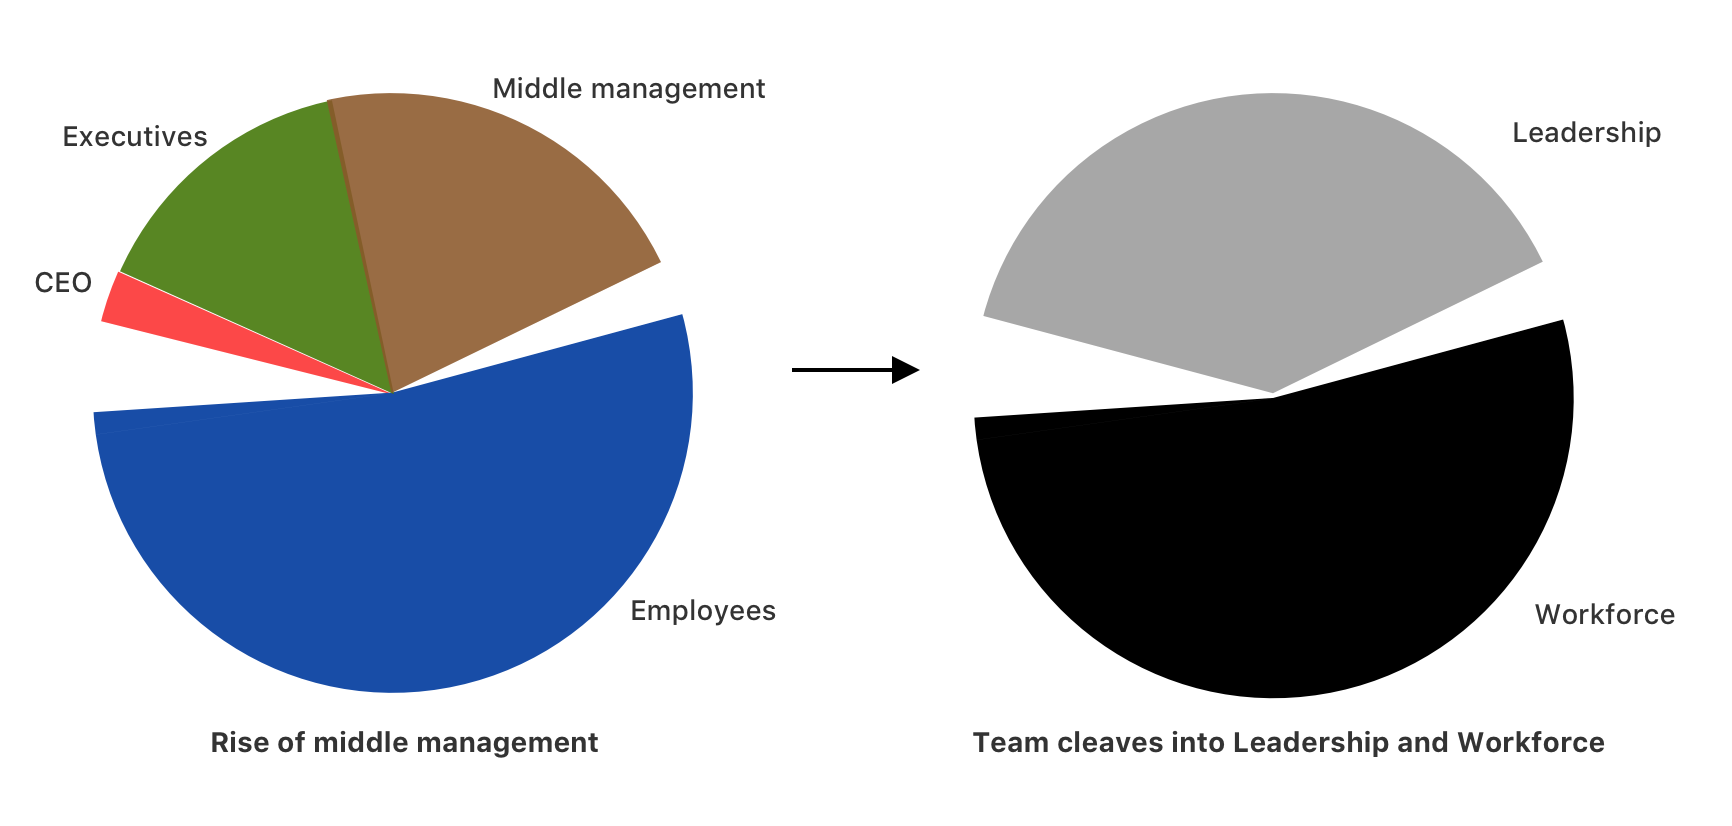 How the rise of middle management cleaves the team into leadership and workforce